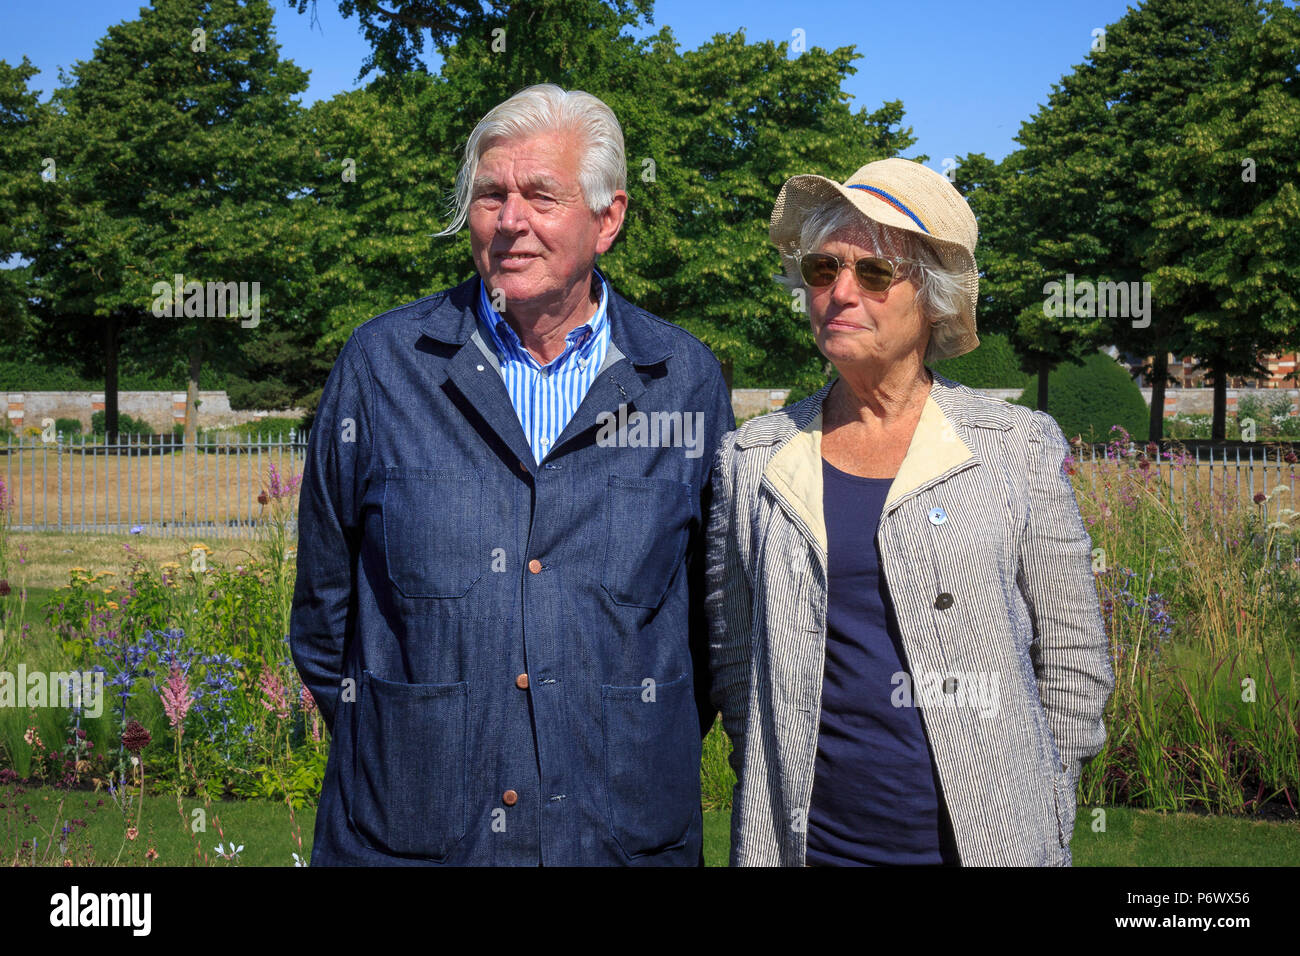 London, UK. 2nd-8th July 2018. RHS Hampton Court Flower Show. Iconic Horticultural Heroes. Dutch landscape designer, plantsman and author Piet Oudolf with his wife Anja in the perennial meadow style borders as he is presented with an award for iconic garden design. - Designer:  Piet Oudolf - Stock Image